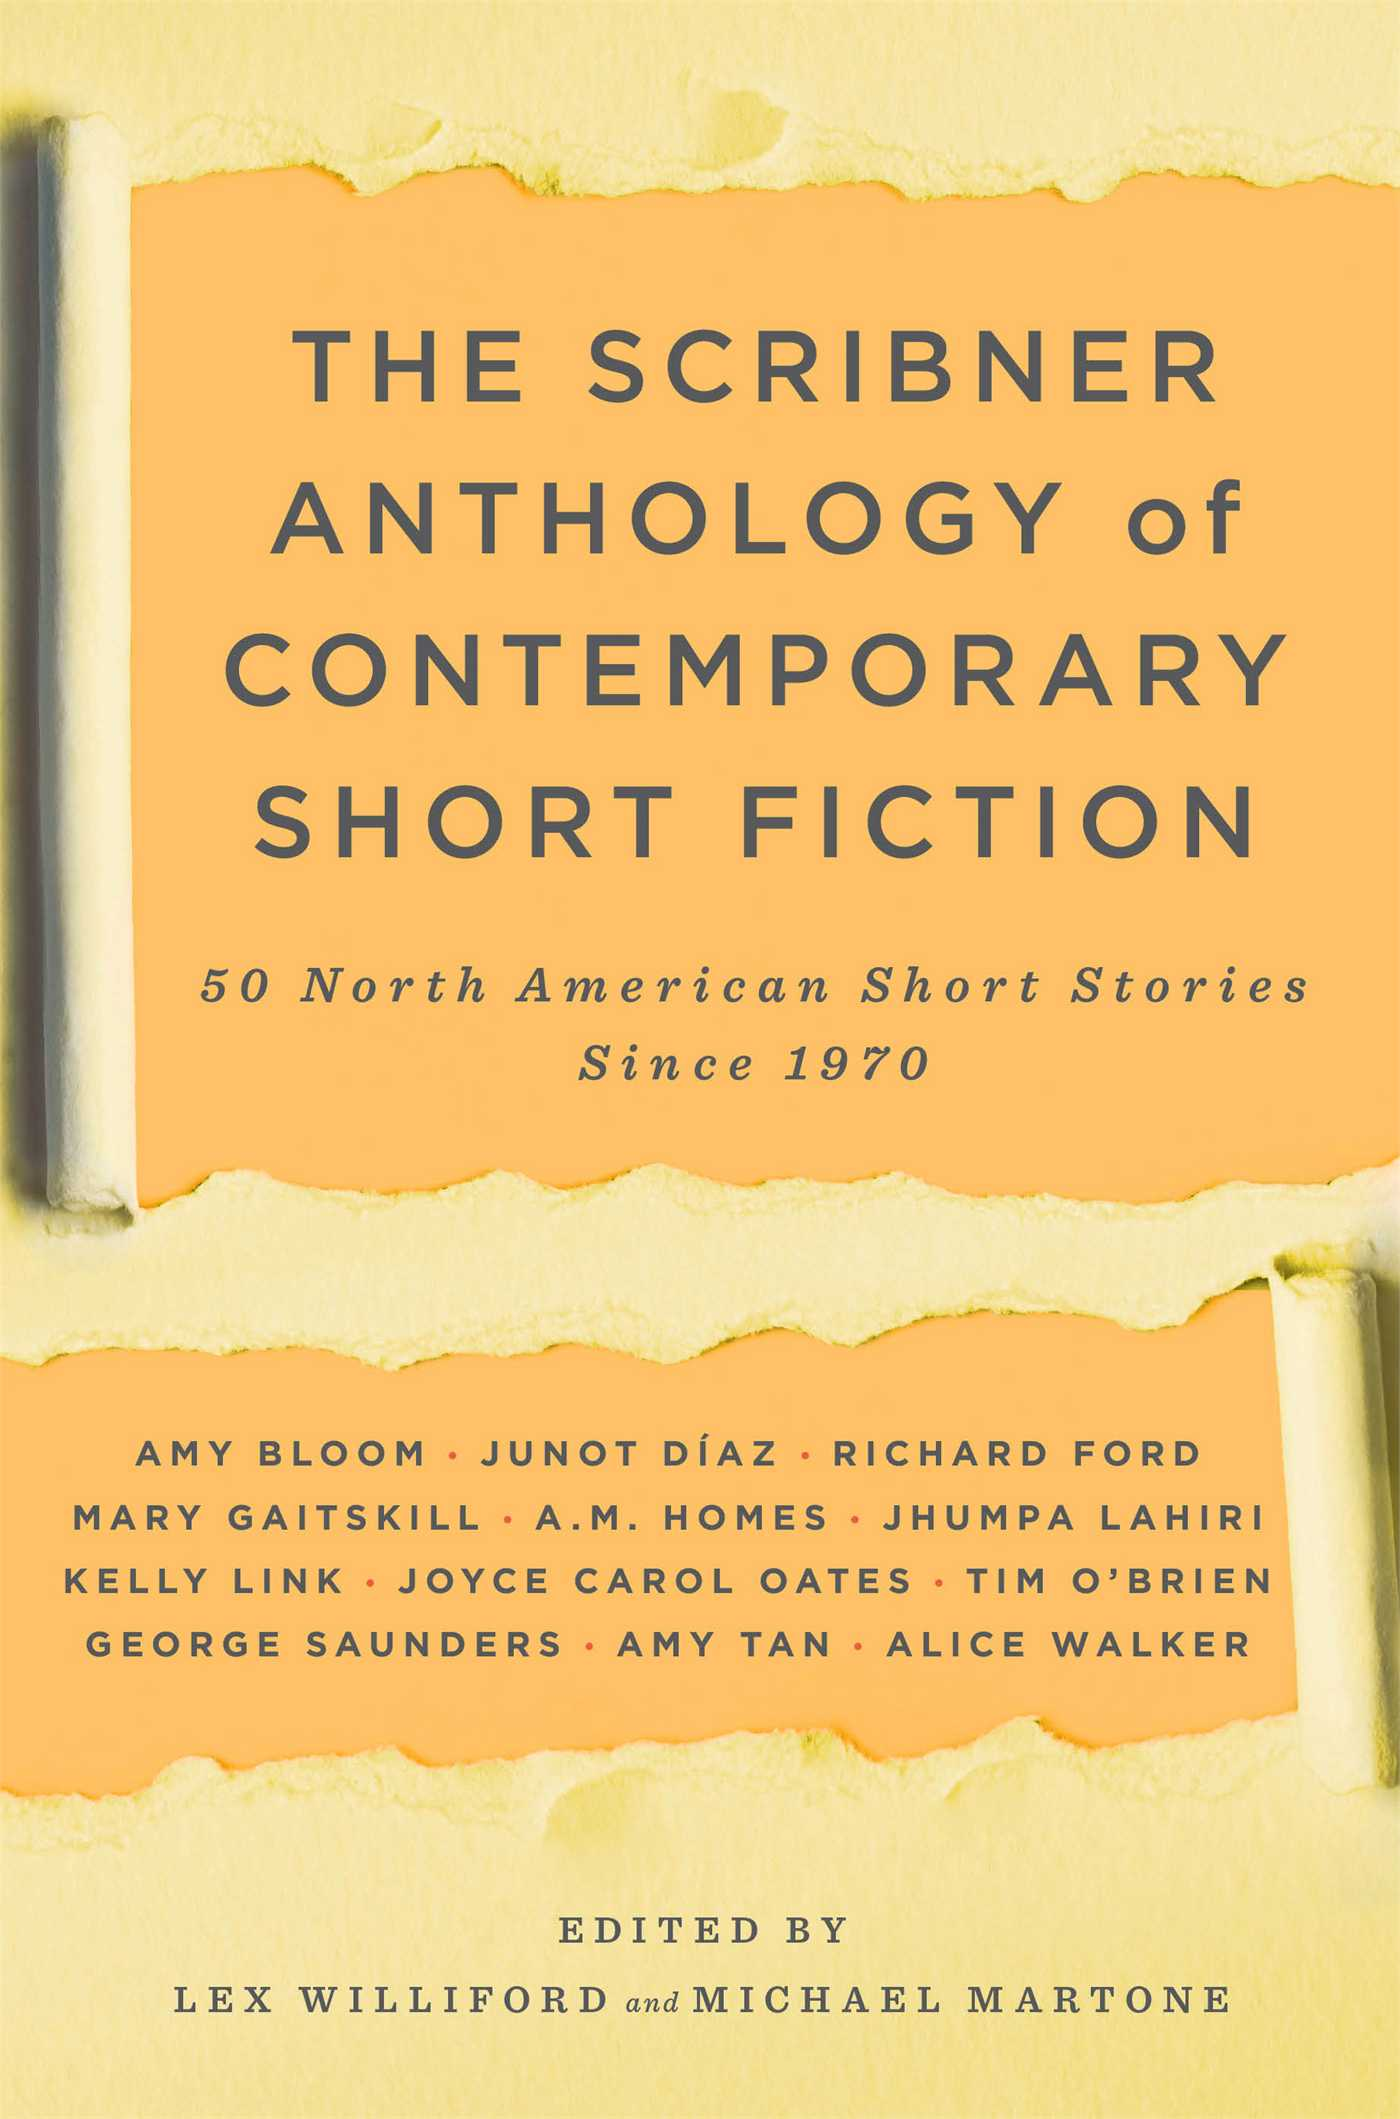 Scribner-anthology-of-contemporary-short-fiction-9781416532279_hr